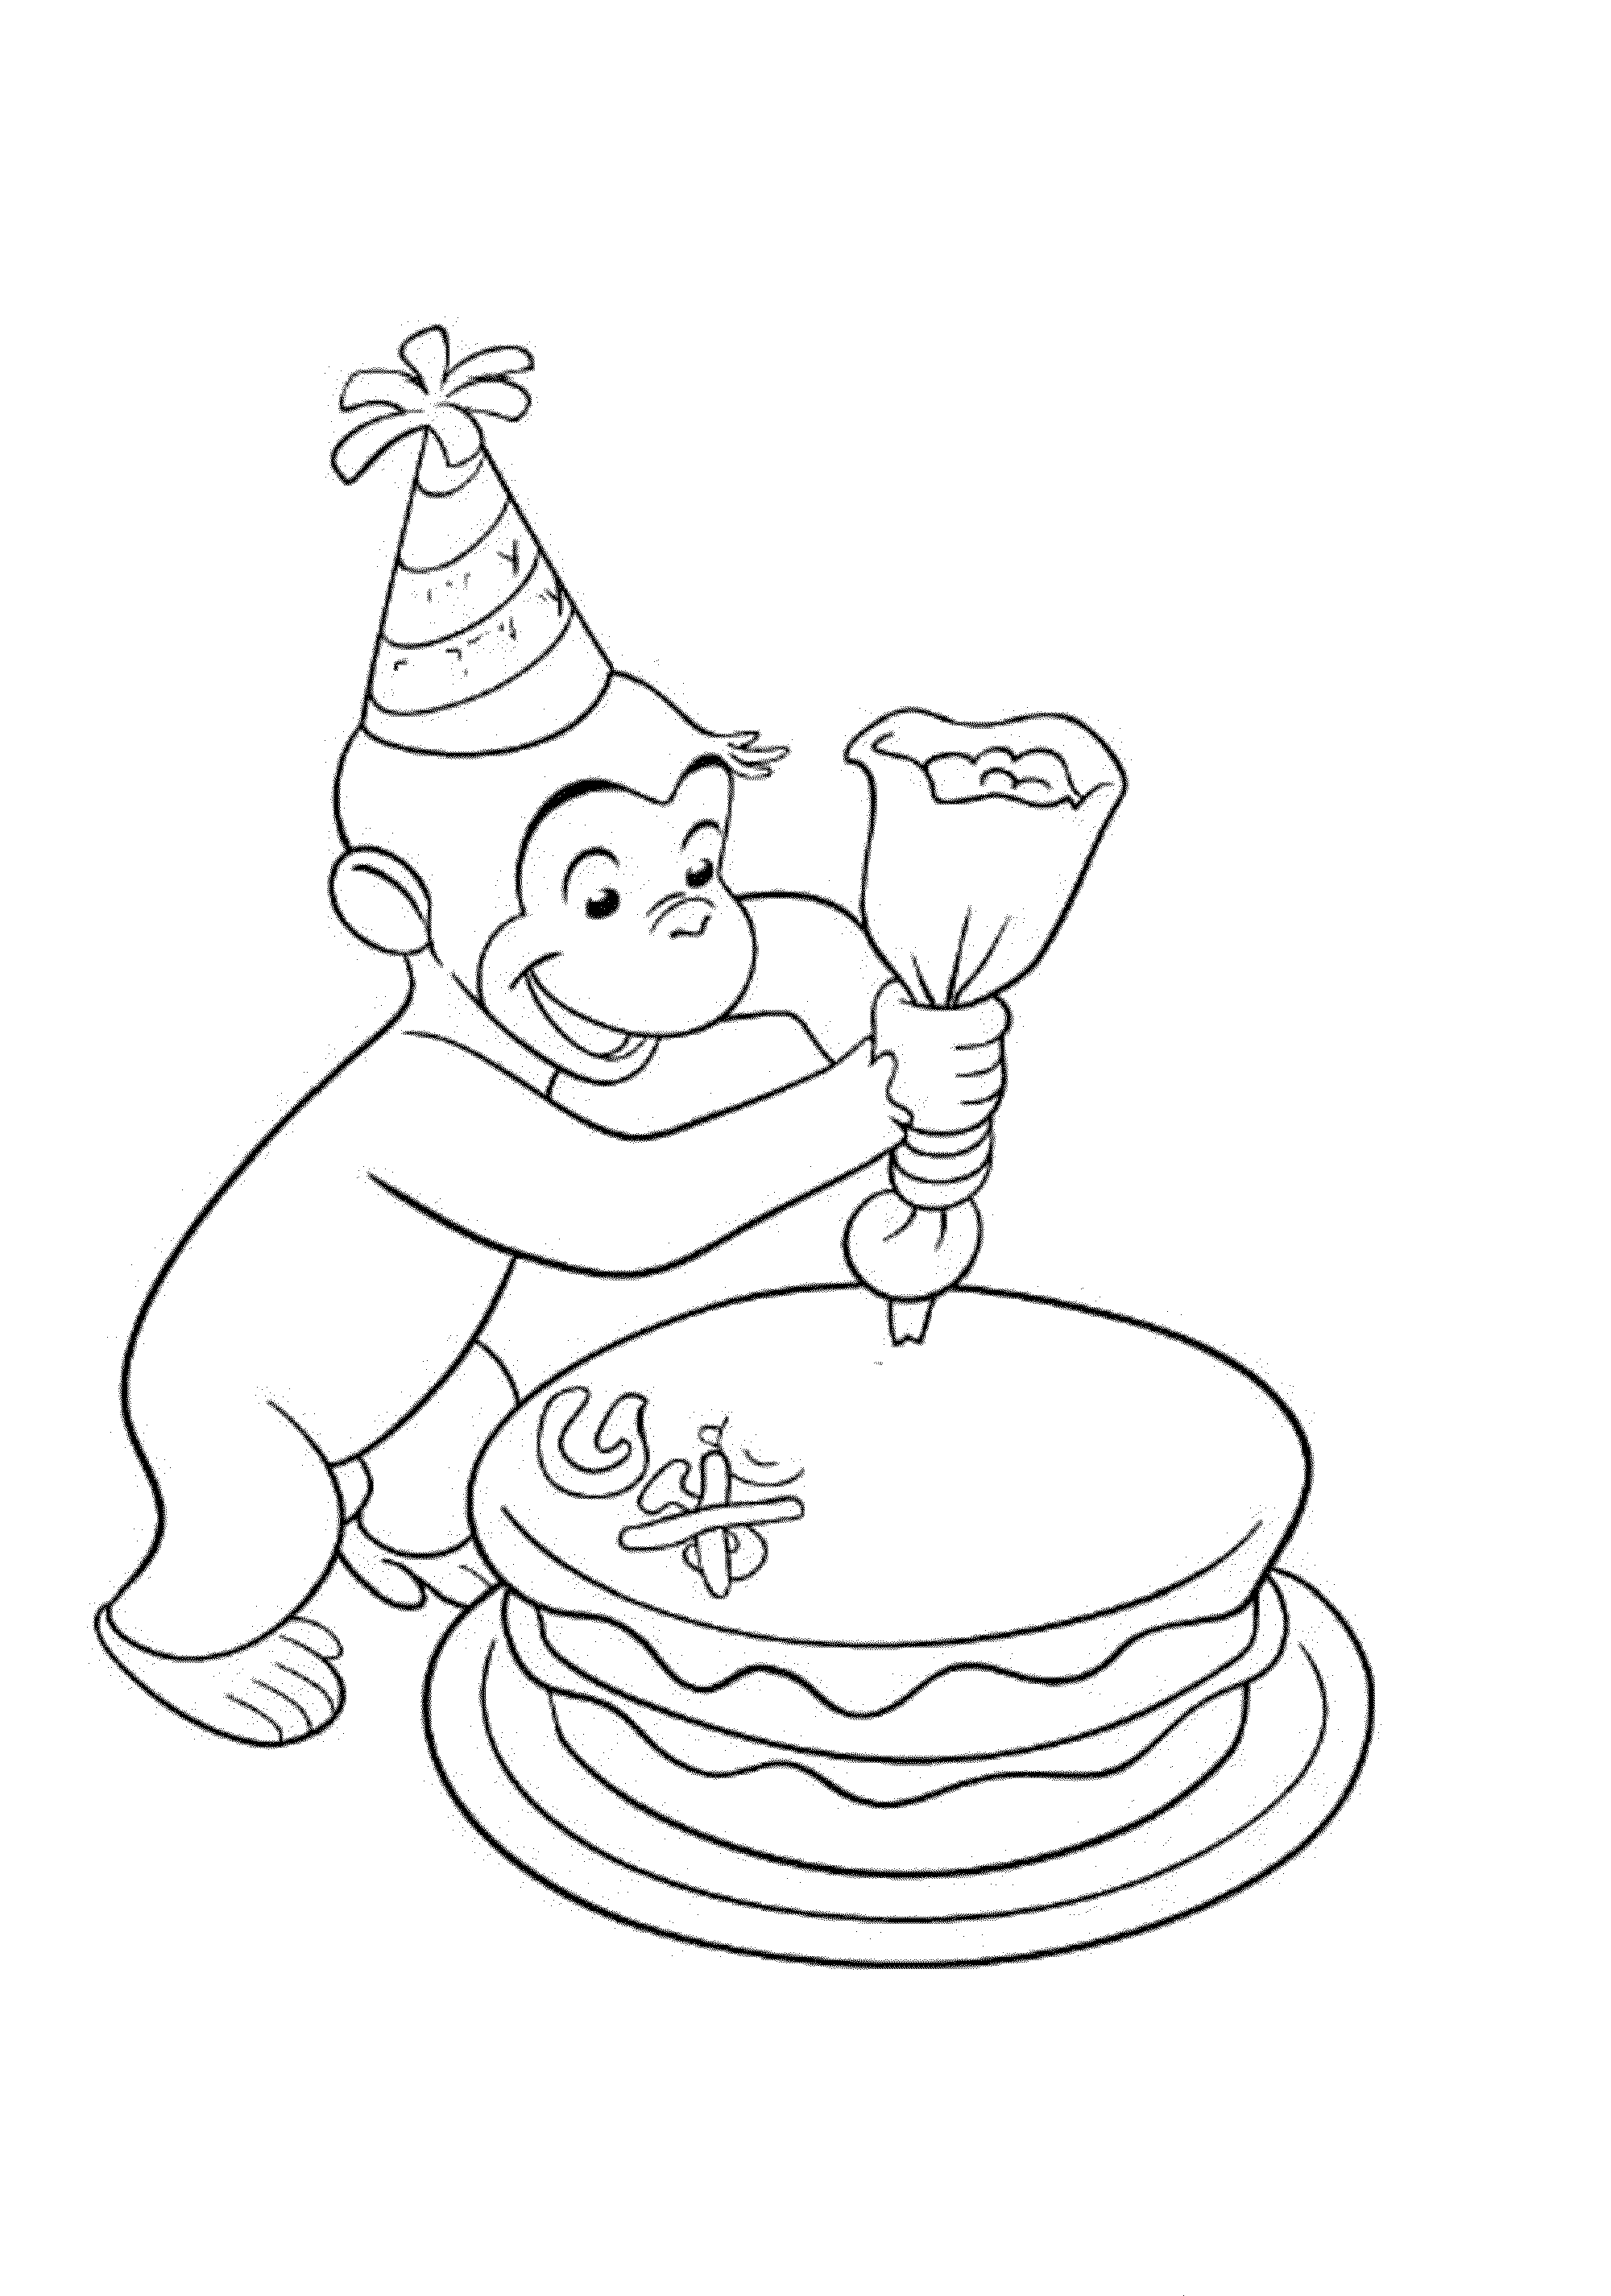 Happy Birthday Curious George Coloring Pages - Printable ...